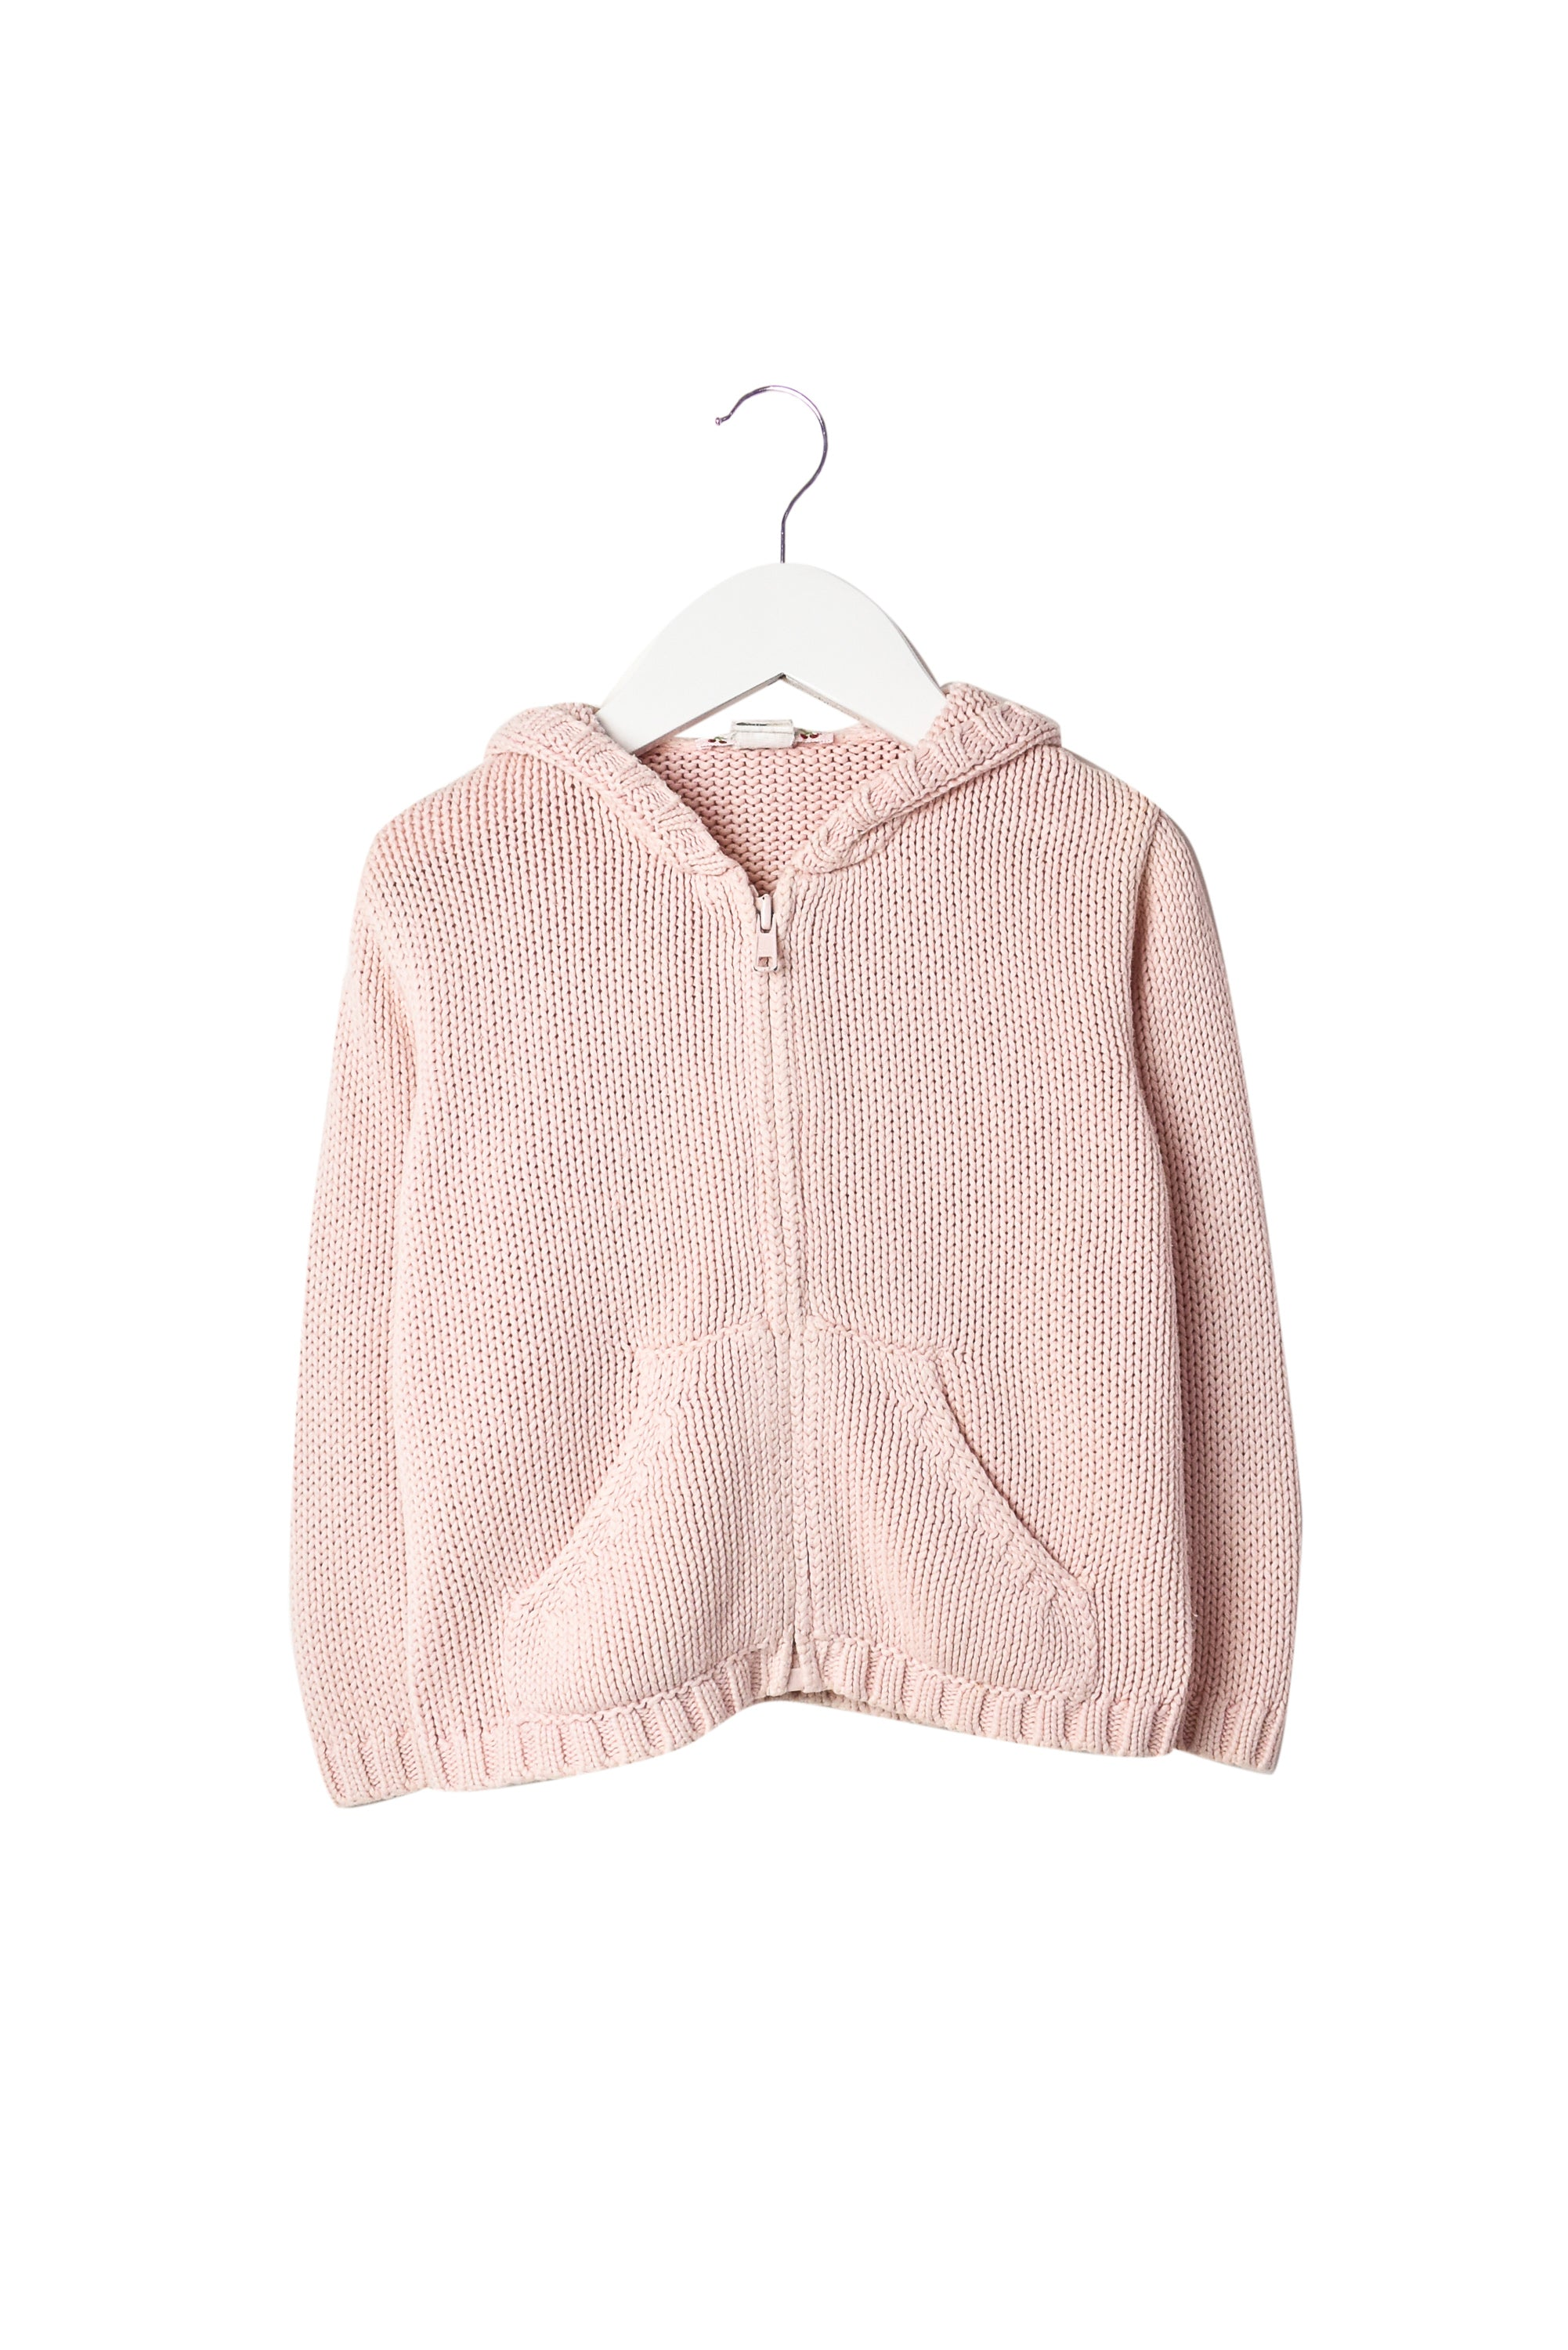 10007295 Bonpoint Kids ~ Sweater 4T at Retykle